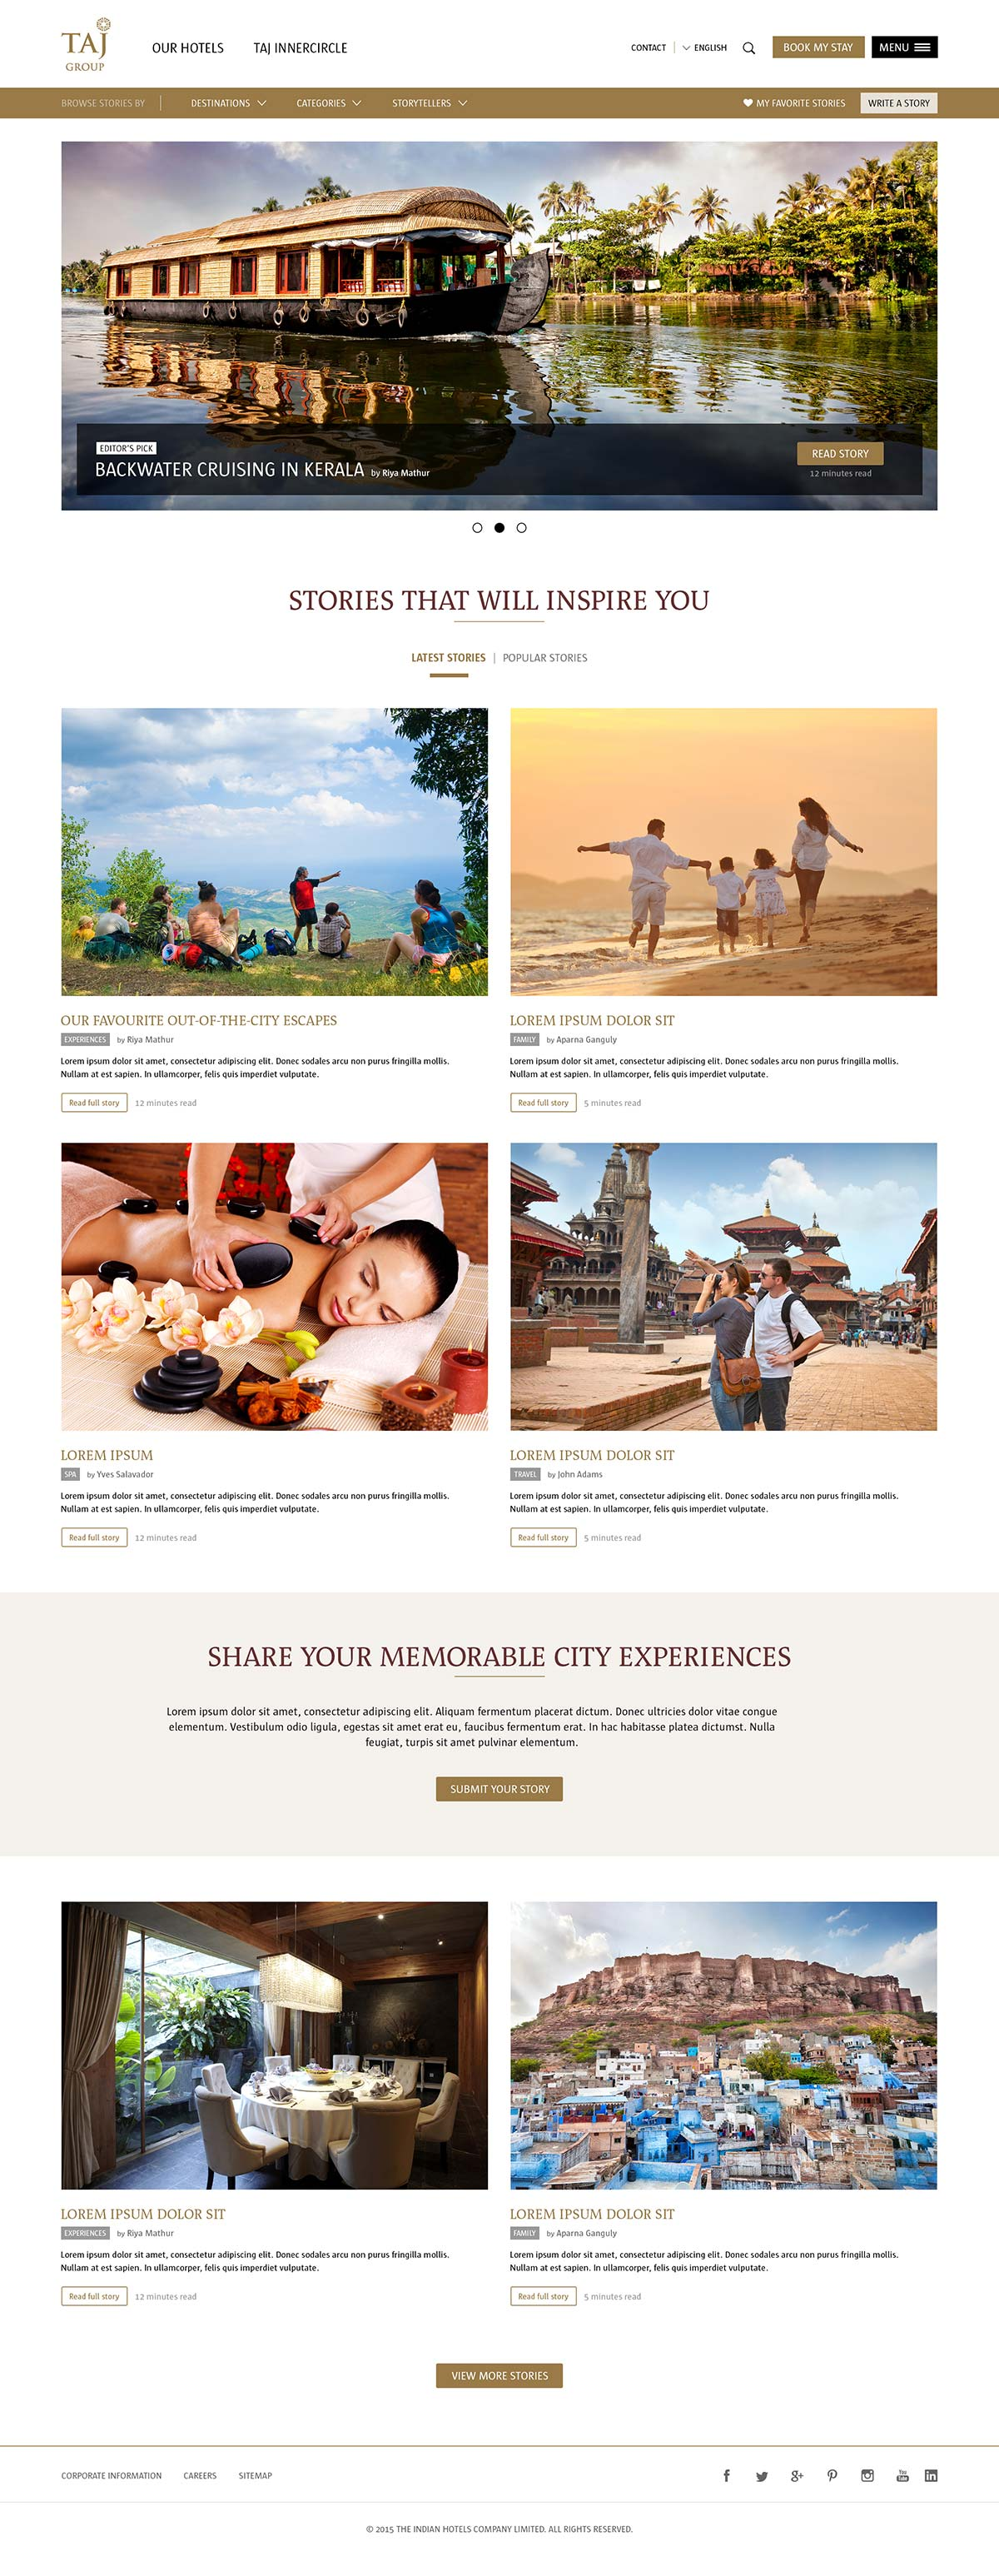 Travel inspirations web page